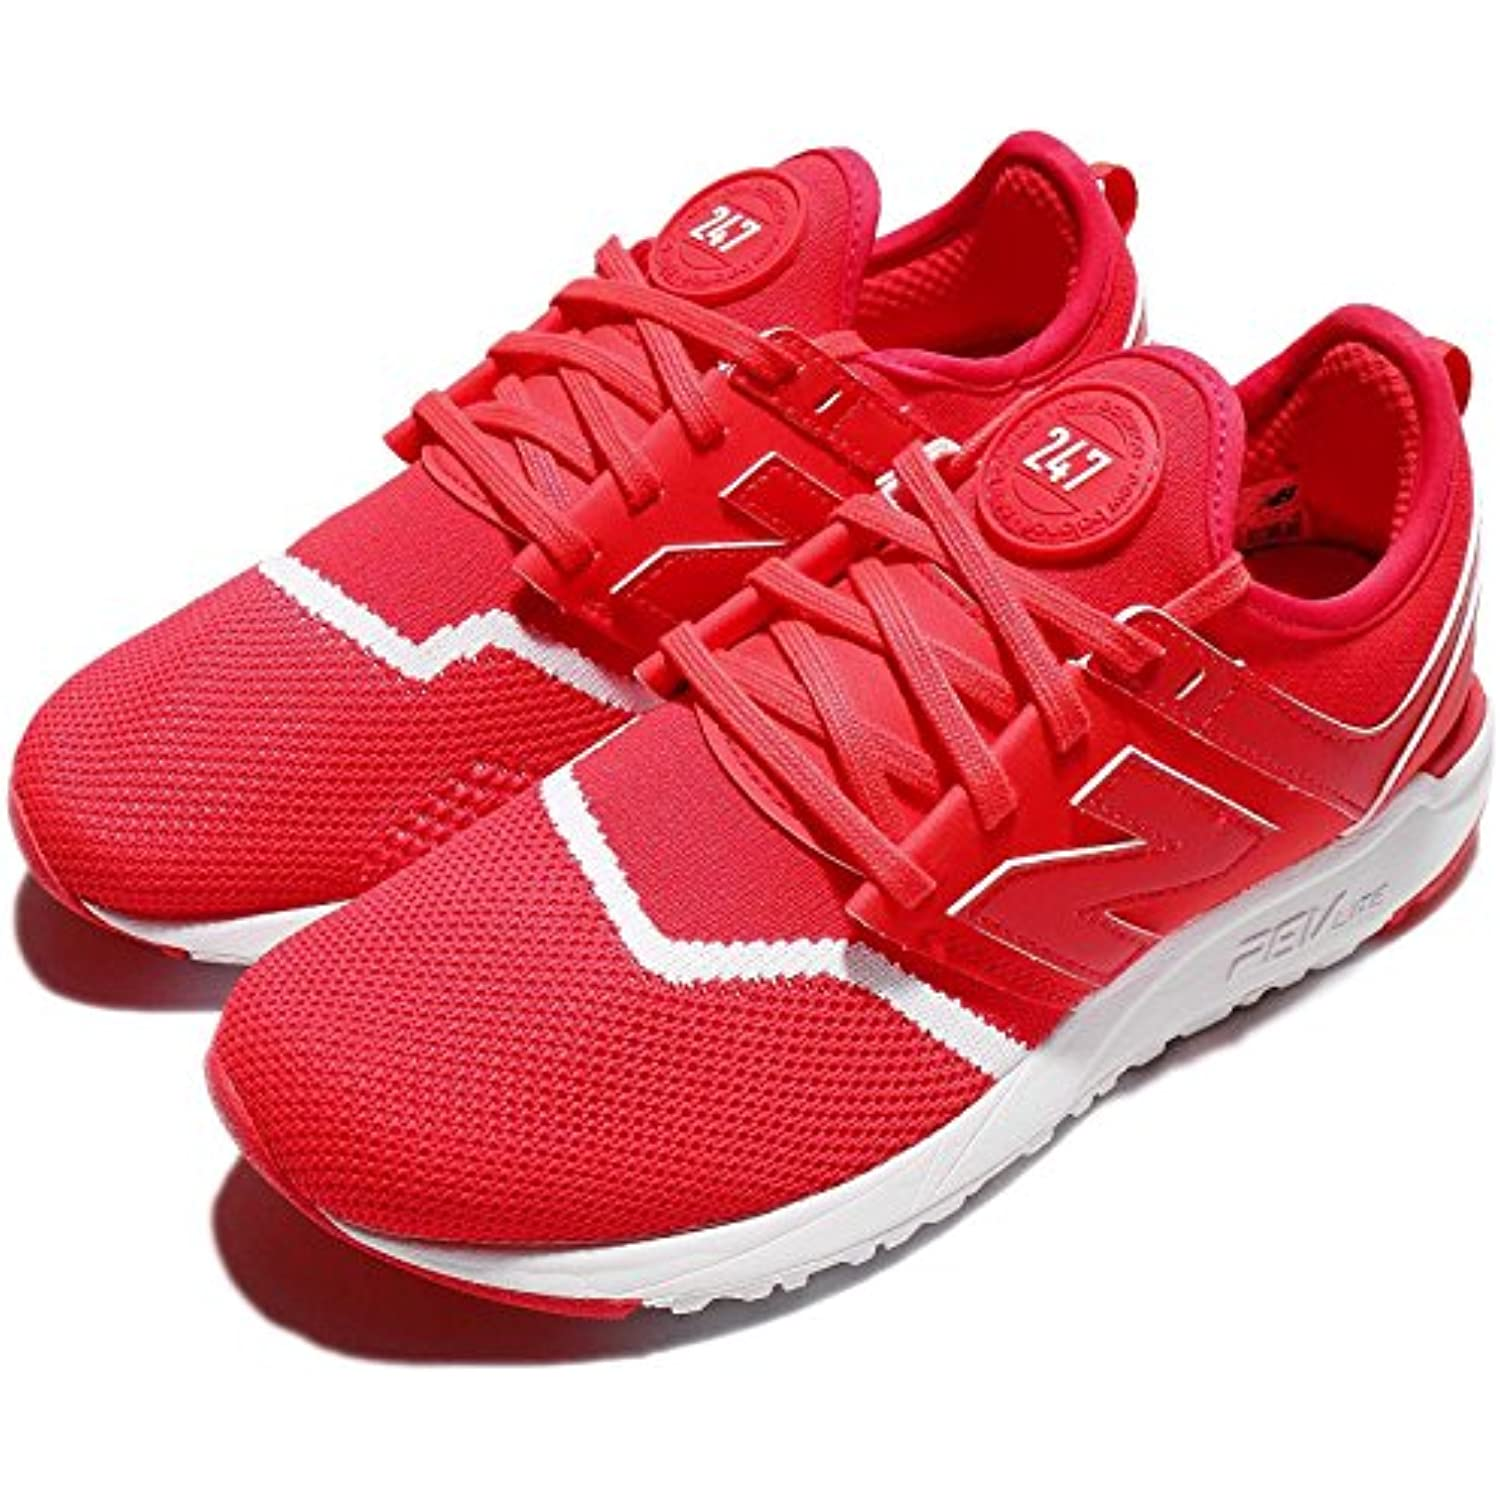 New Balance Baskets Flexibles Ultra egrave;res L eacute;g egrave;res Ultra Wrl247 - B01N2JJ160 - 70d77c